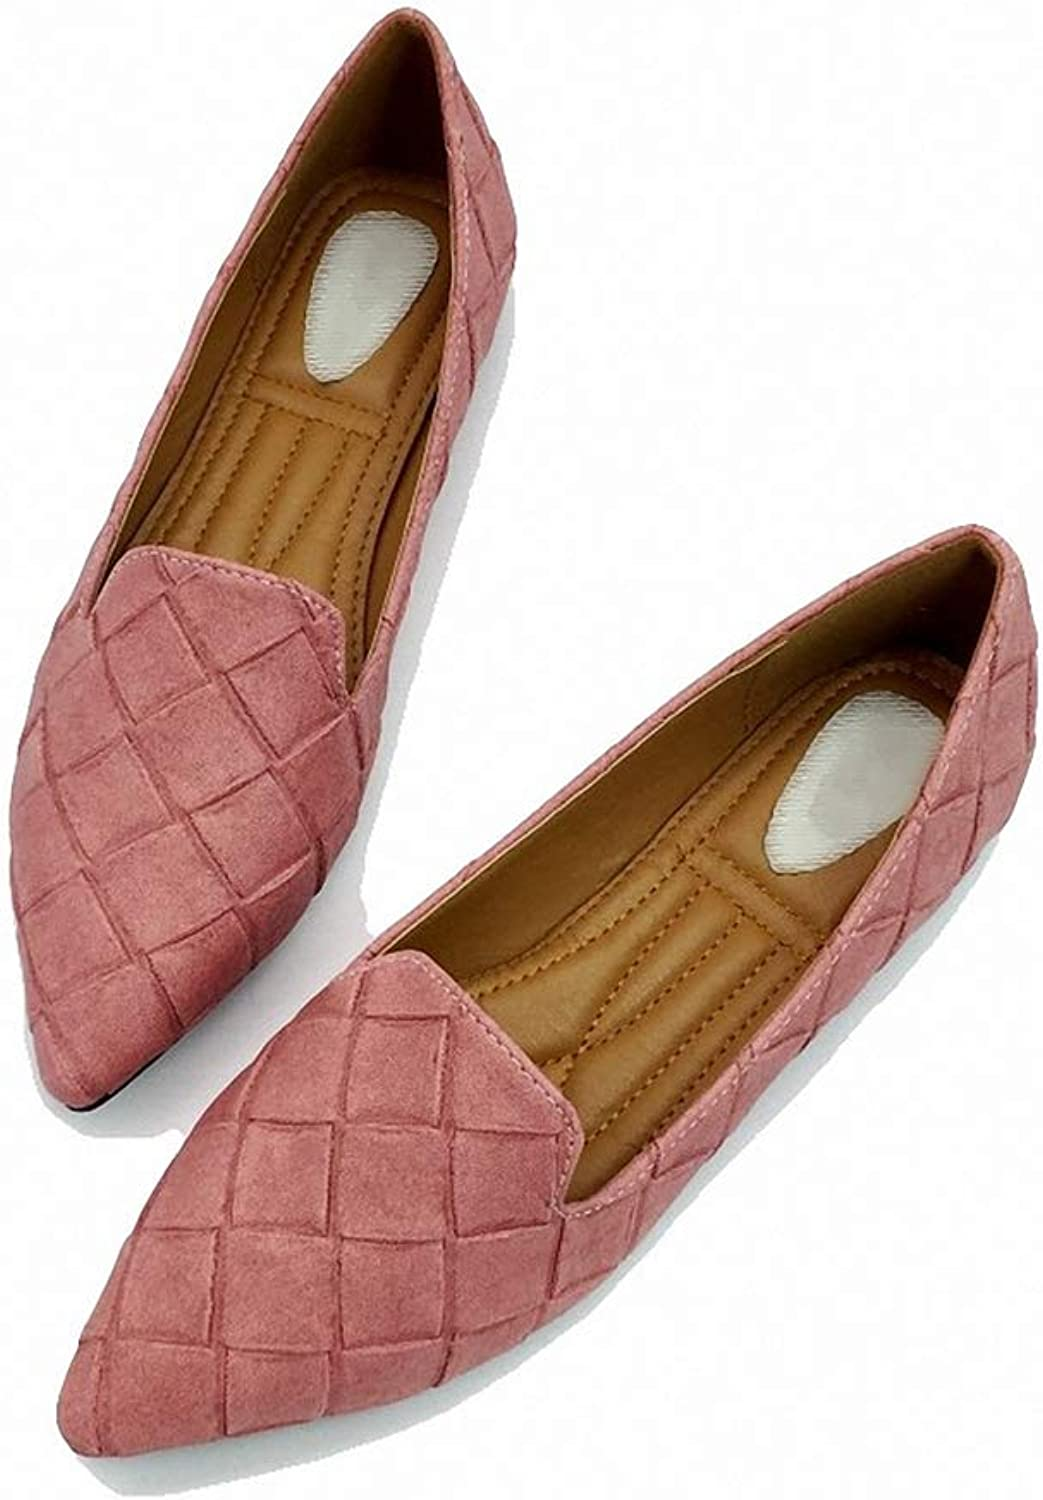 August Jim Flats Flats Flats skor, Pointed Toe Slip on Casual Loafers 8.5 Flat skor  noll vinst